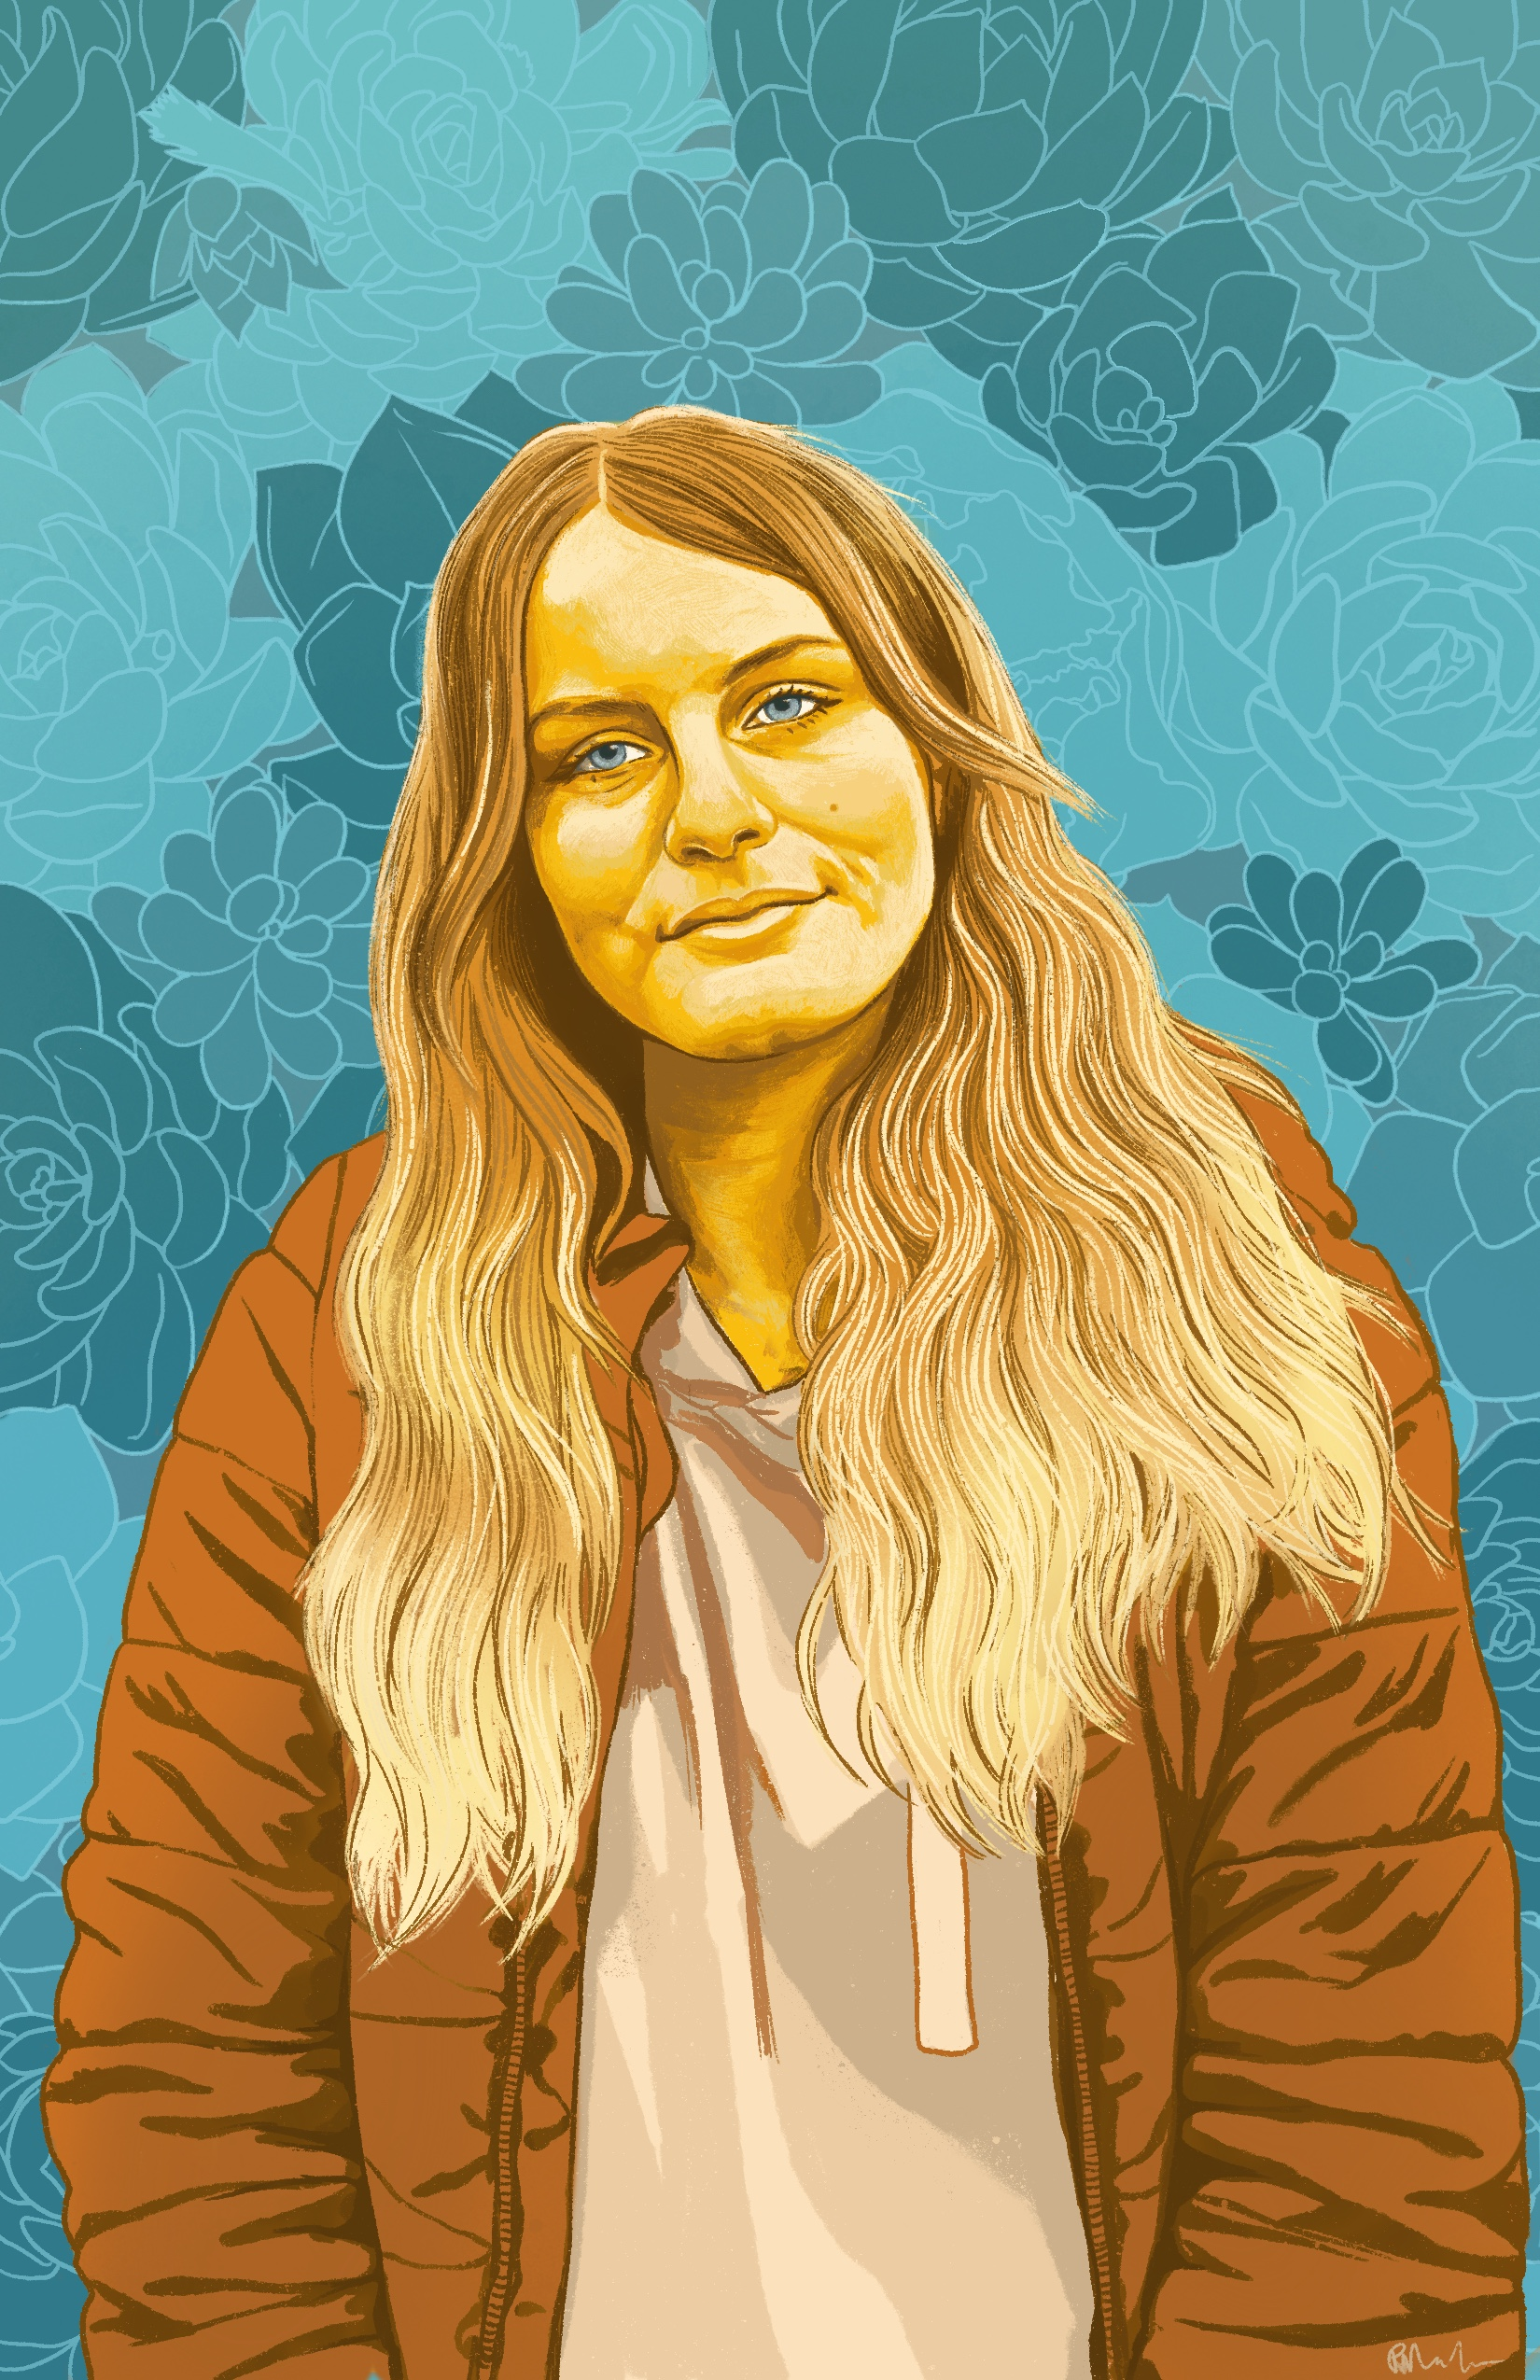 Digital painting of Vanessa, a young Caucasian woman with long wavy hair. Vanessa and her clothes are rendered in shades of orange, brown and warm yellow. Her head is tilted slightly to the left and her mouth is closed giving a very slight smile. She wears an unzipped coat over a hoody. Her eyes are light turquoise. The background is decorative with outlines of succulents in different shades of turquoise. ⠀